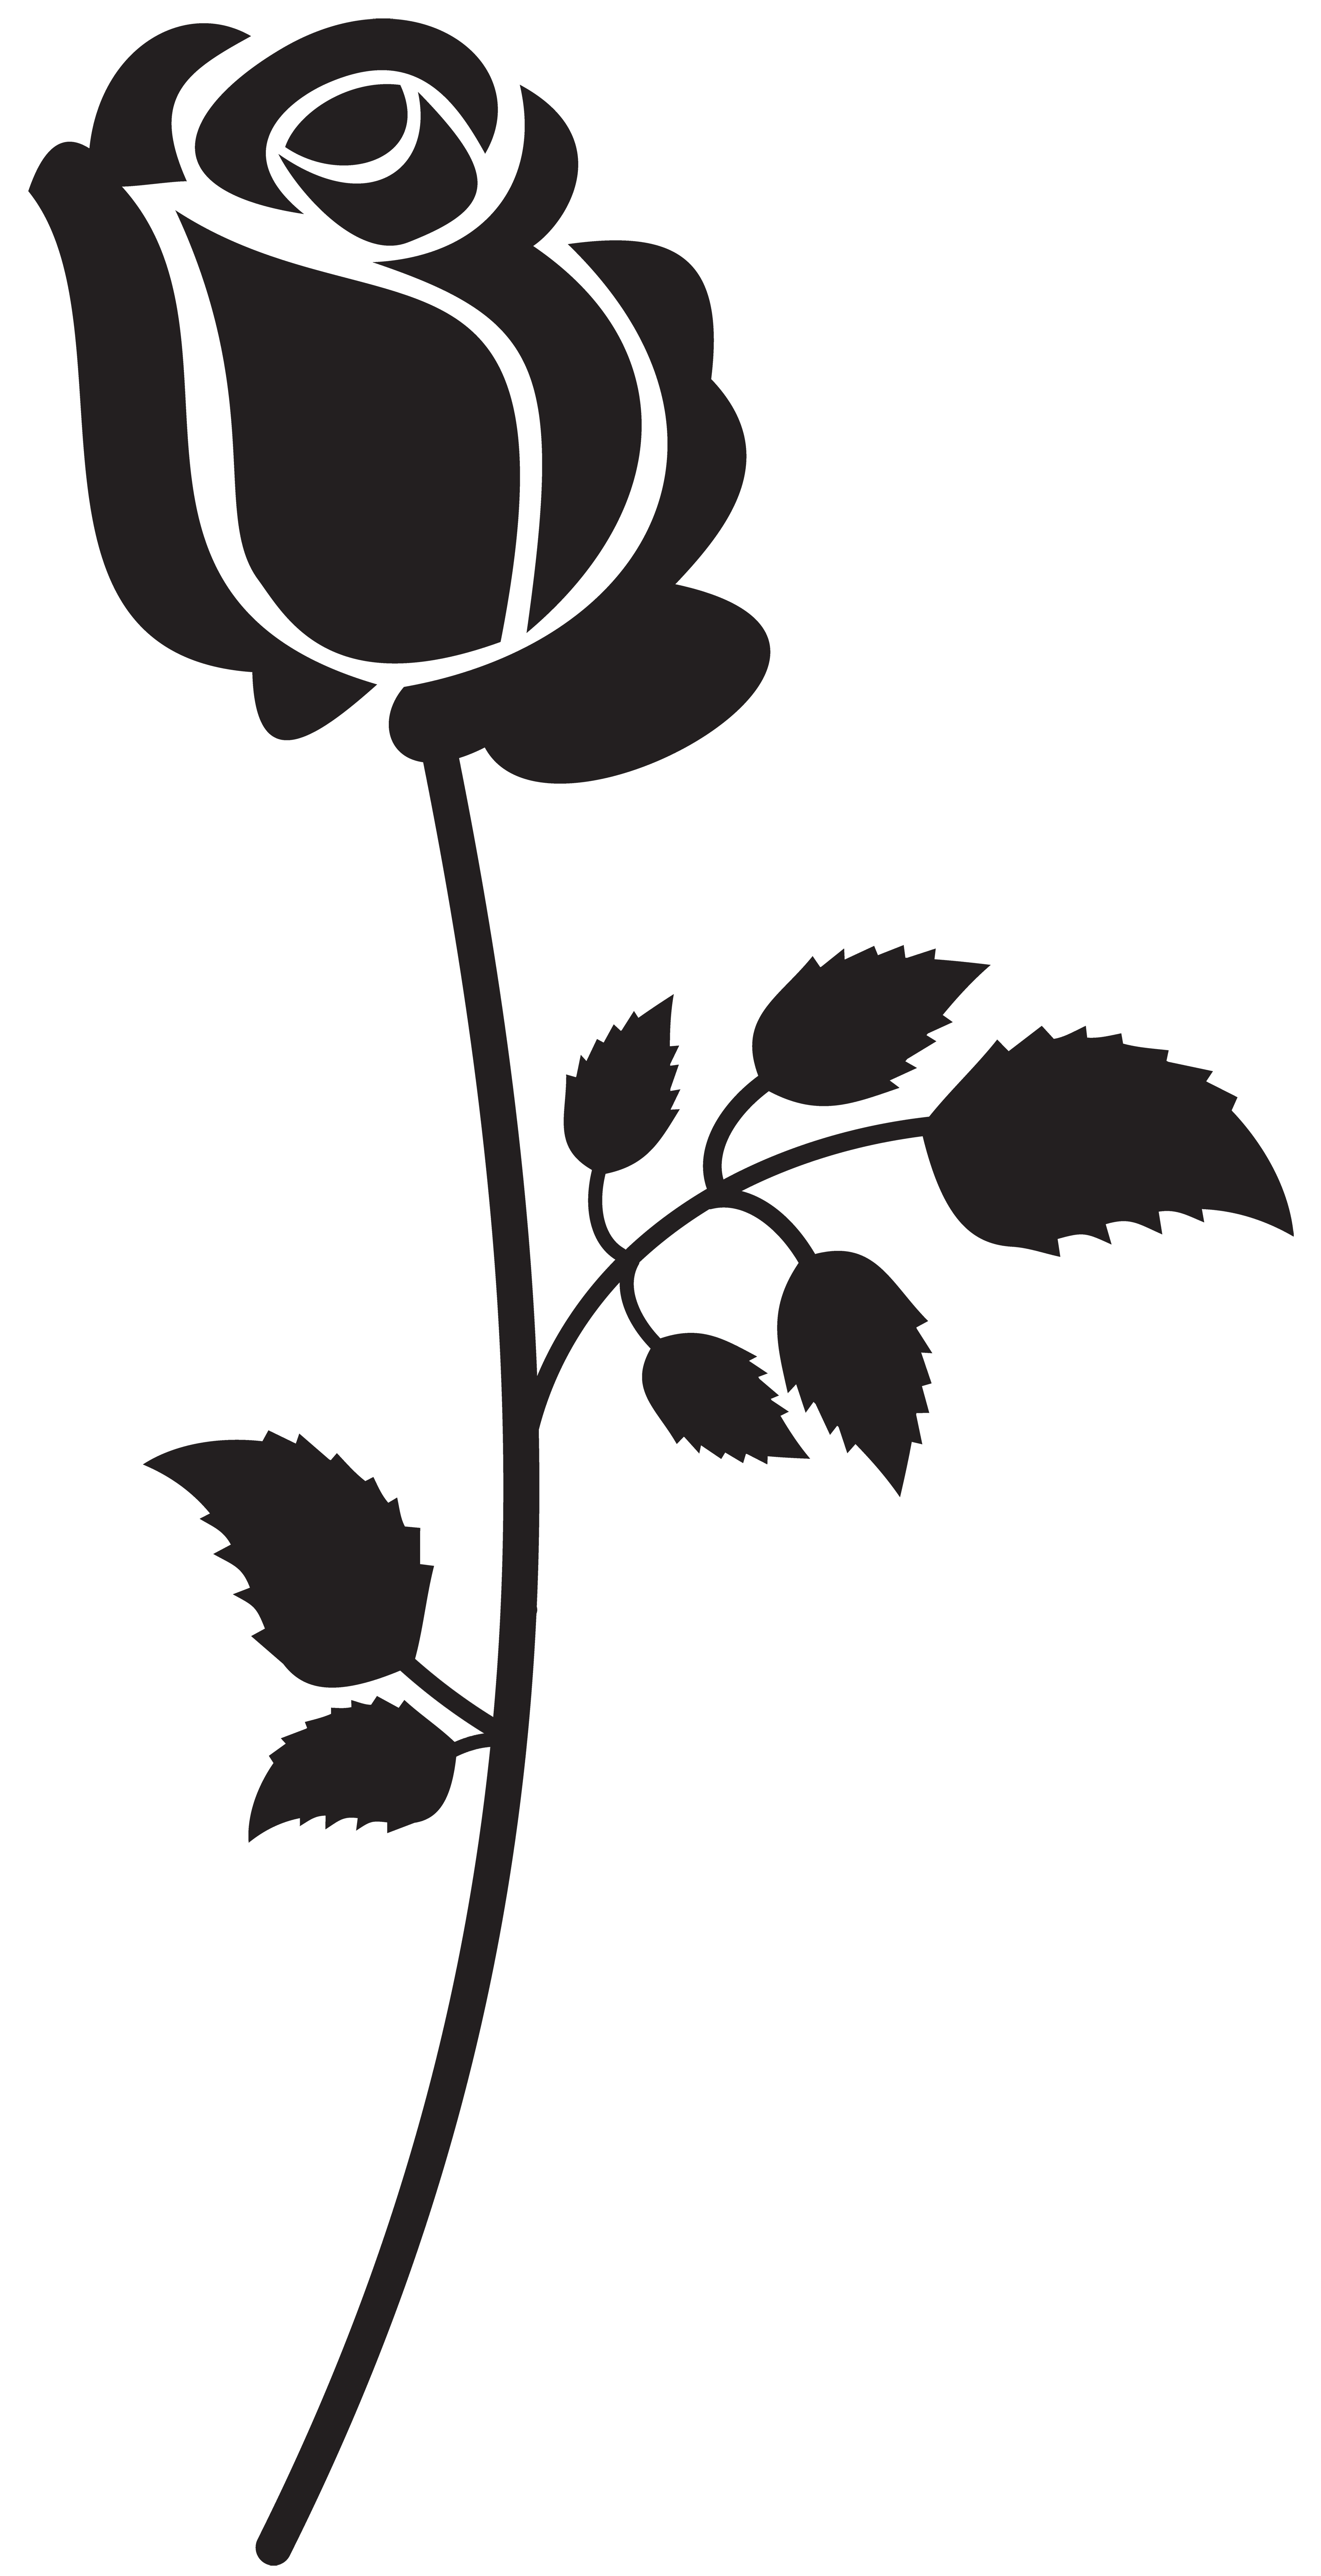 3591x7000 Beauty And The Beast Rose Silhouette Free Clipart